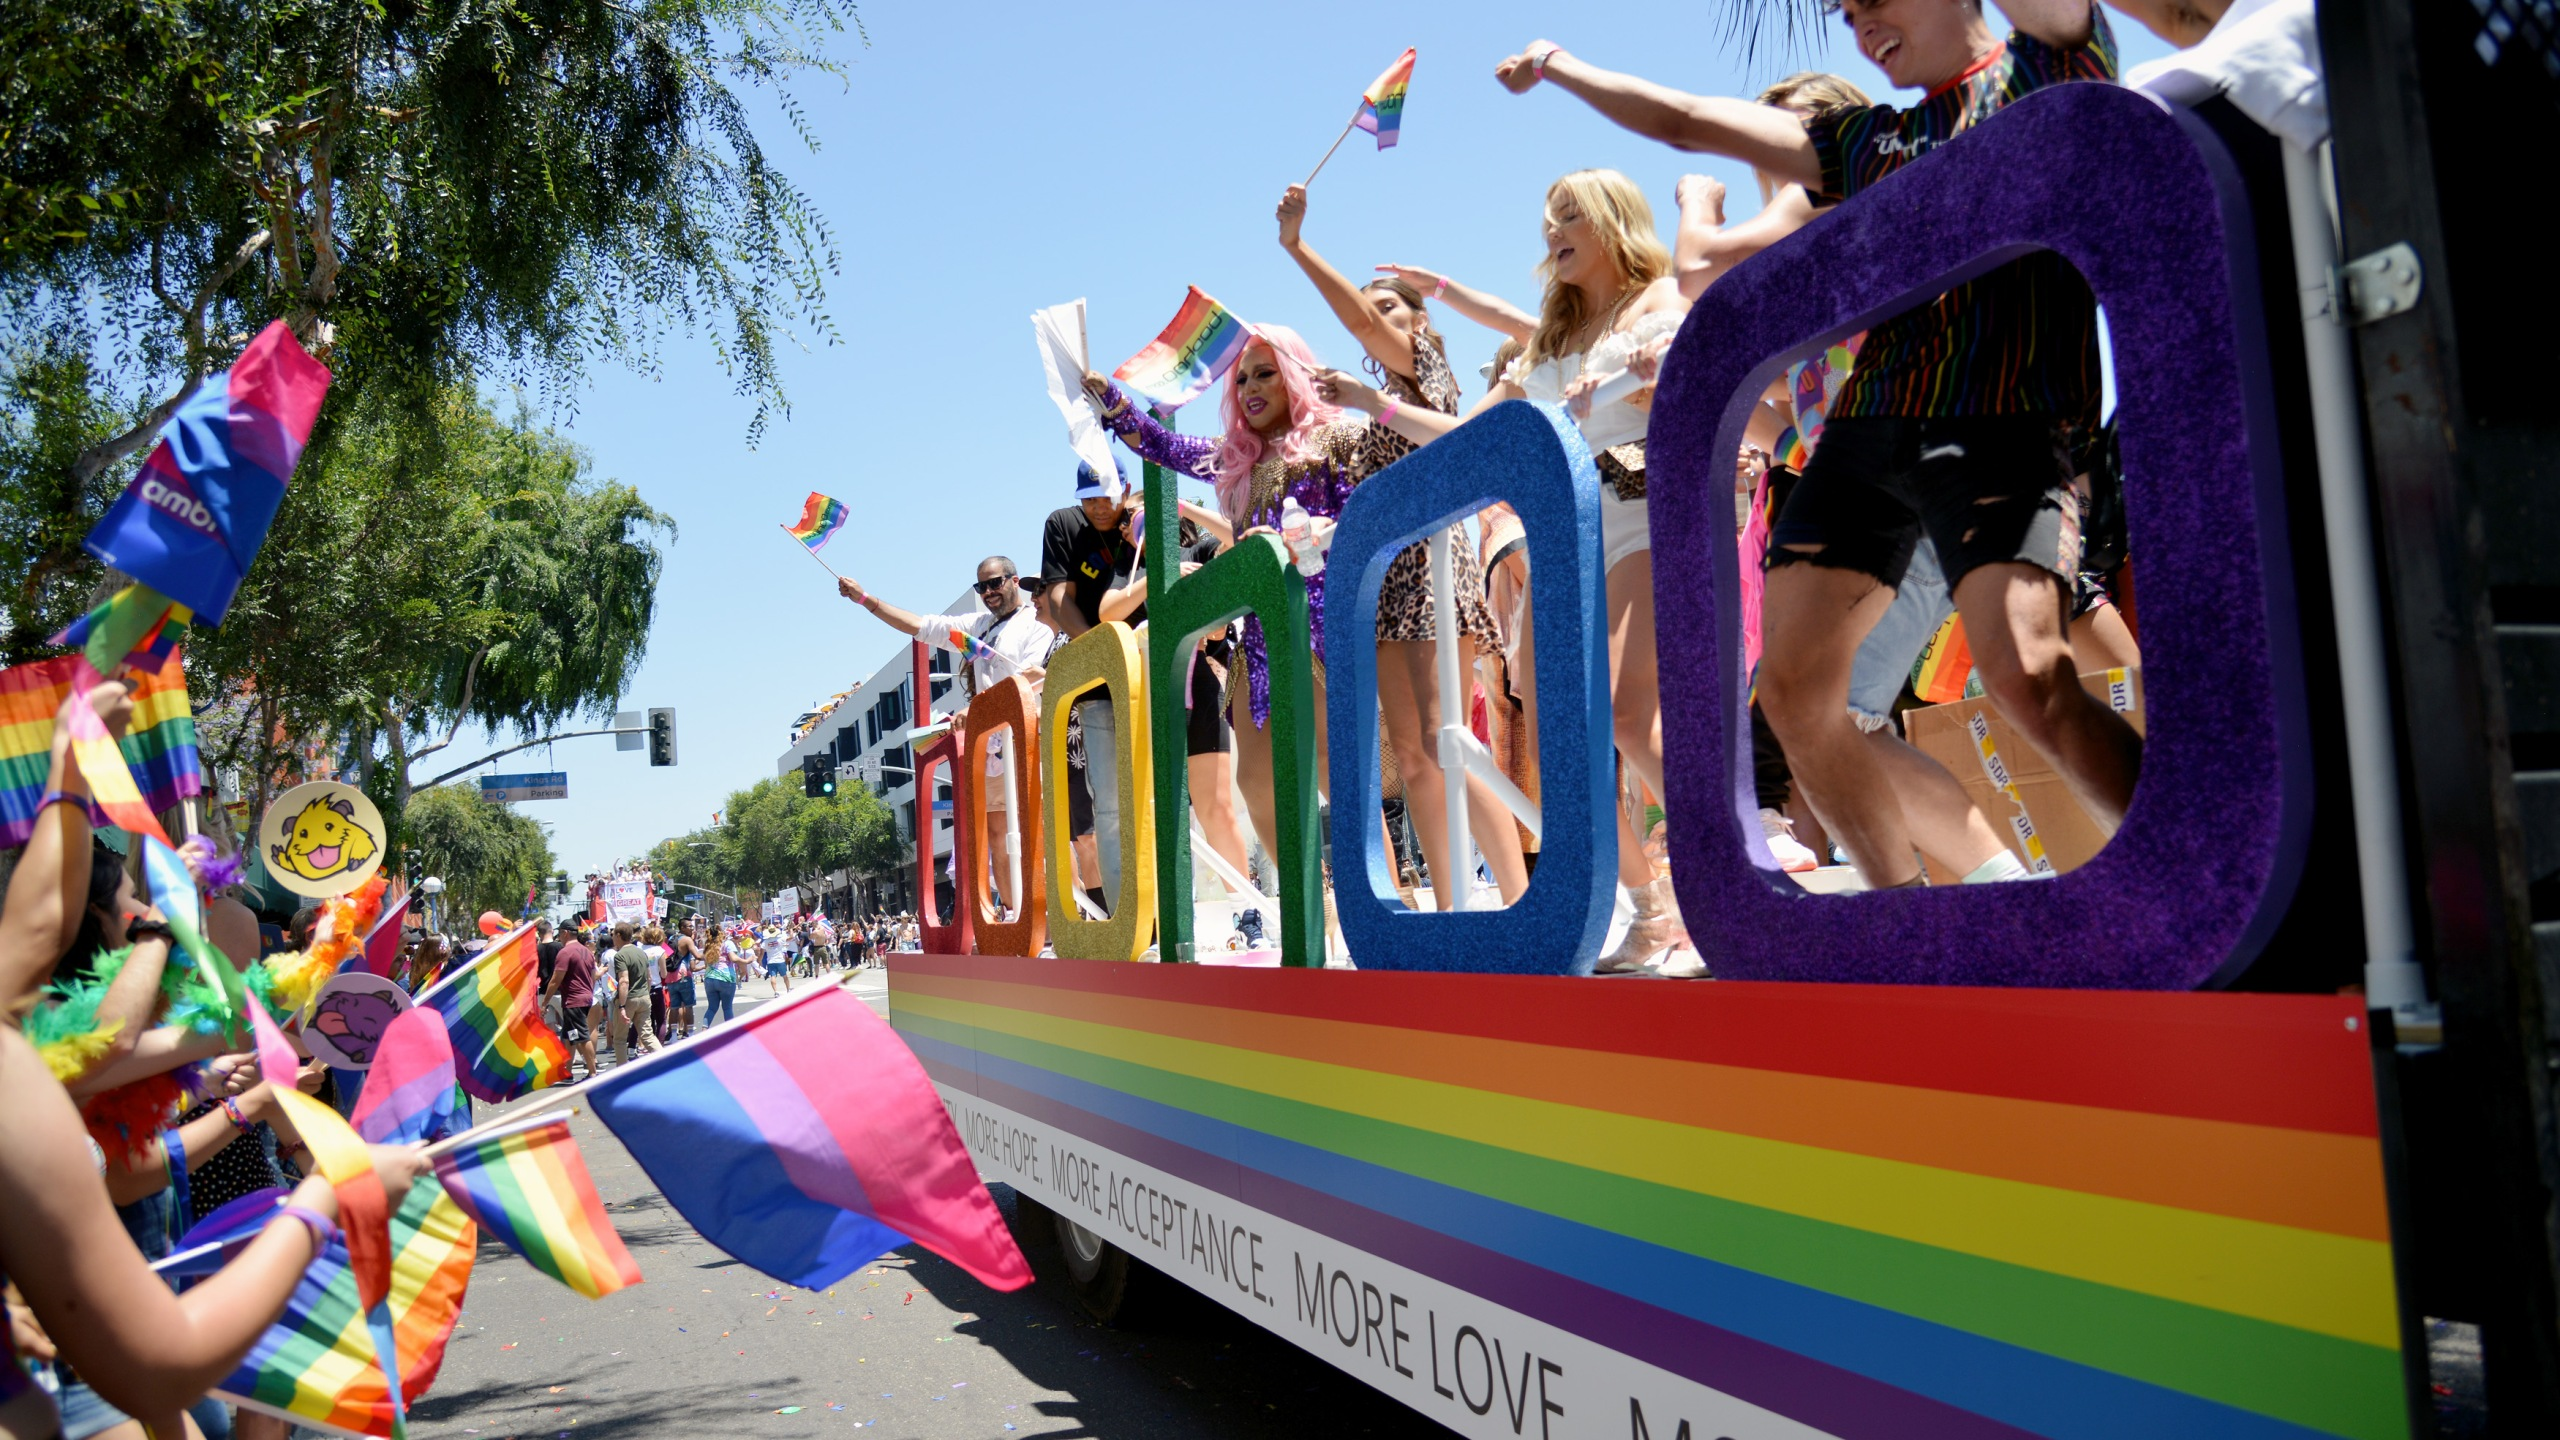 People are seen attending the L.A. Pride Parade on June 9, 2019, in West Hollywood, California. (Chelsea Guglielmino/Getty Images)